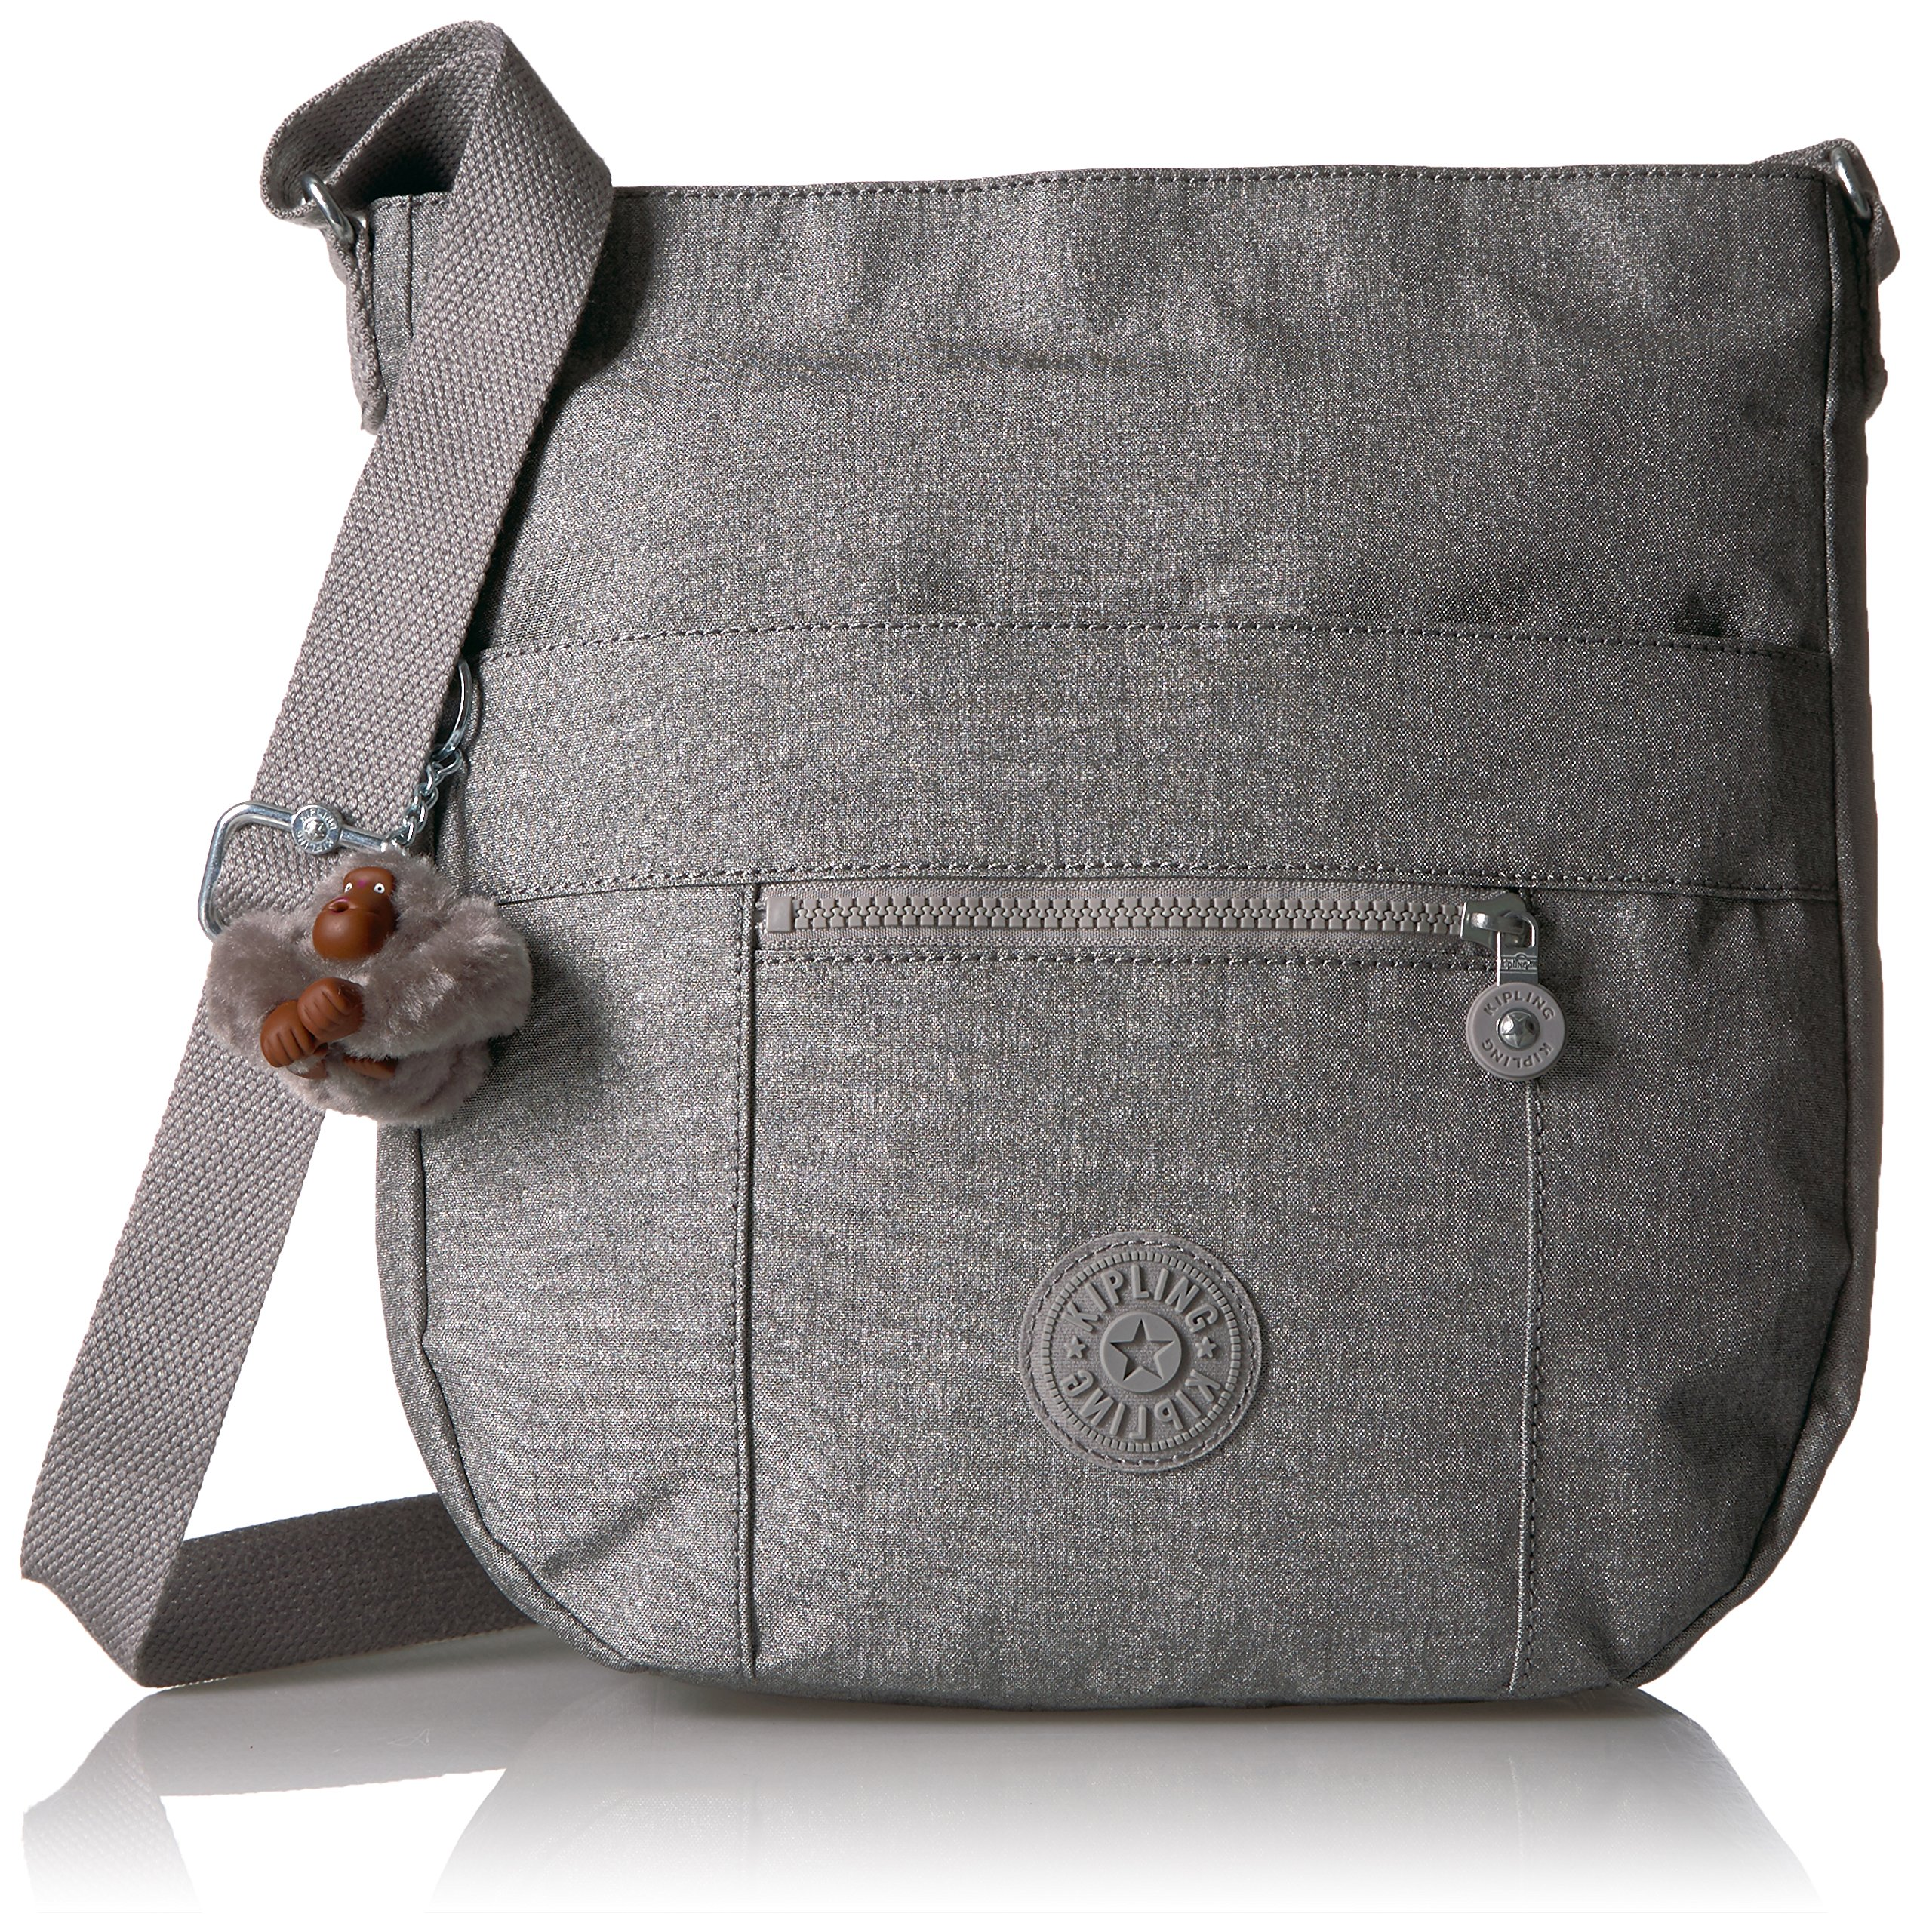 Kipling Bailey Metallic Crossbody Hobo Bag, Silver Glimmer Metallic